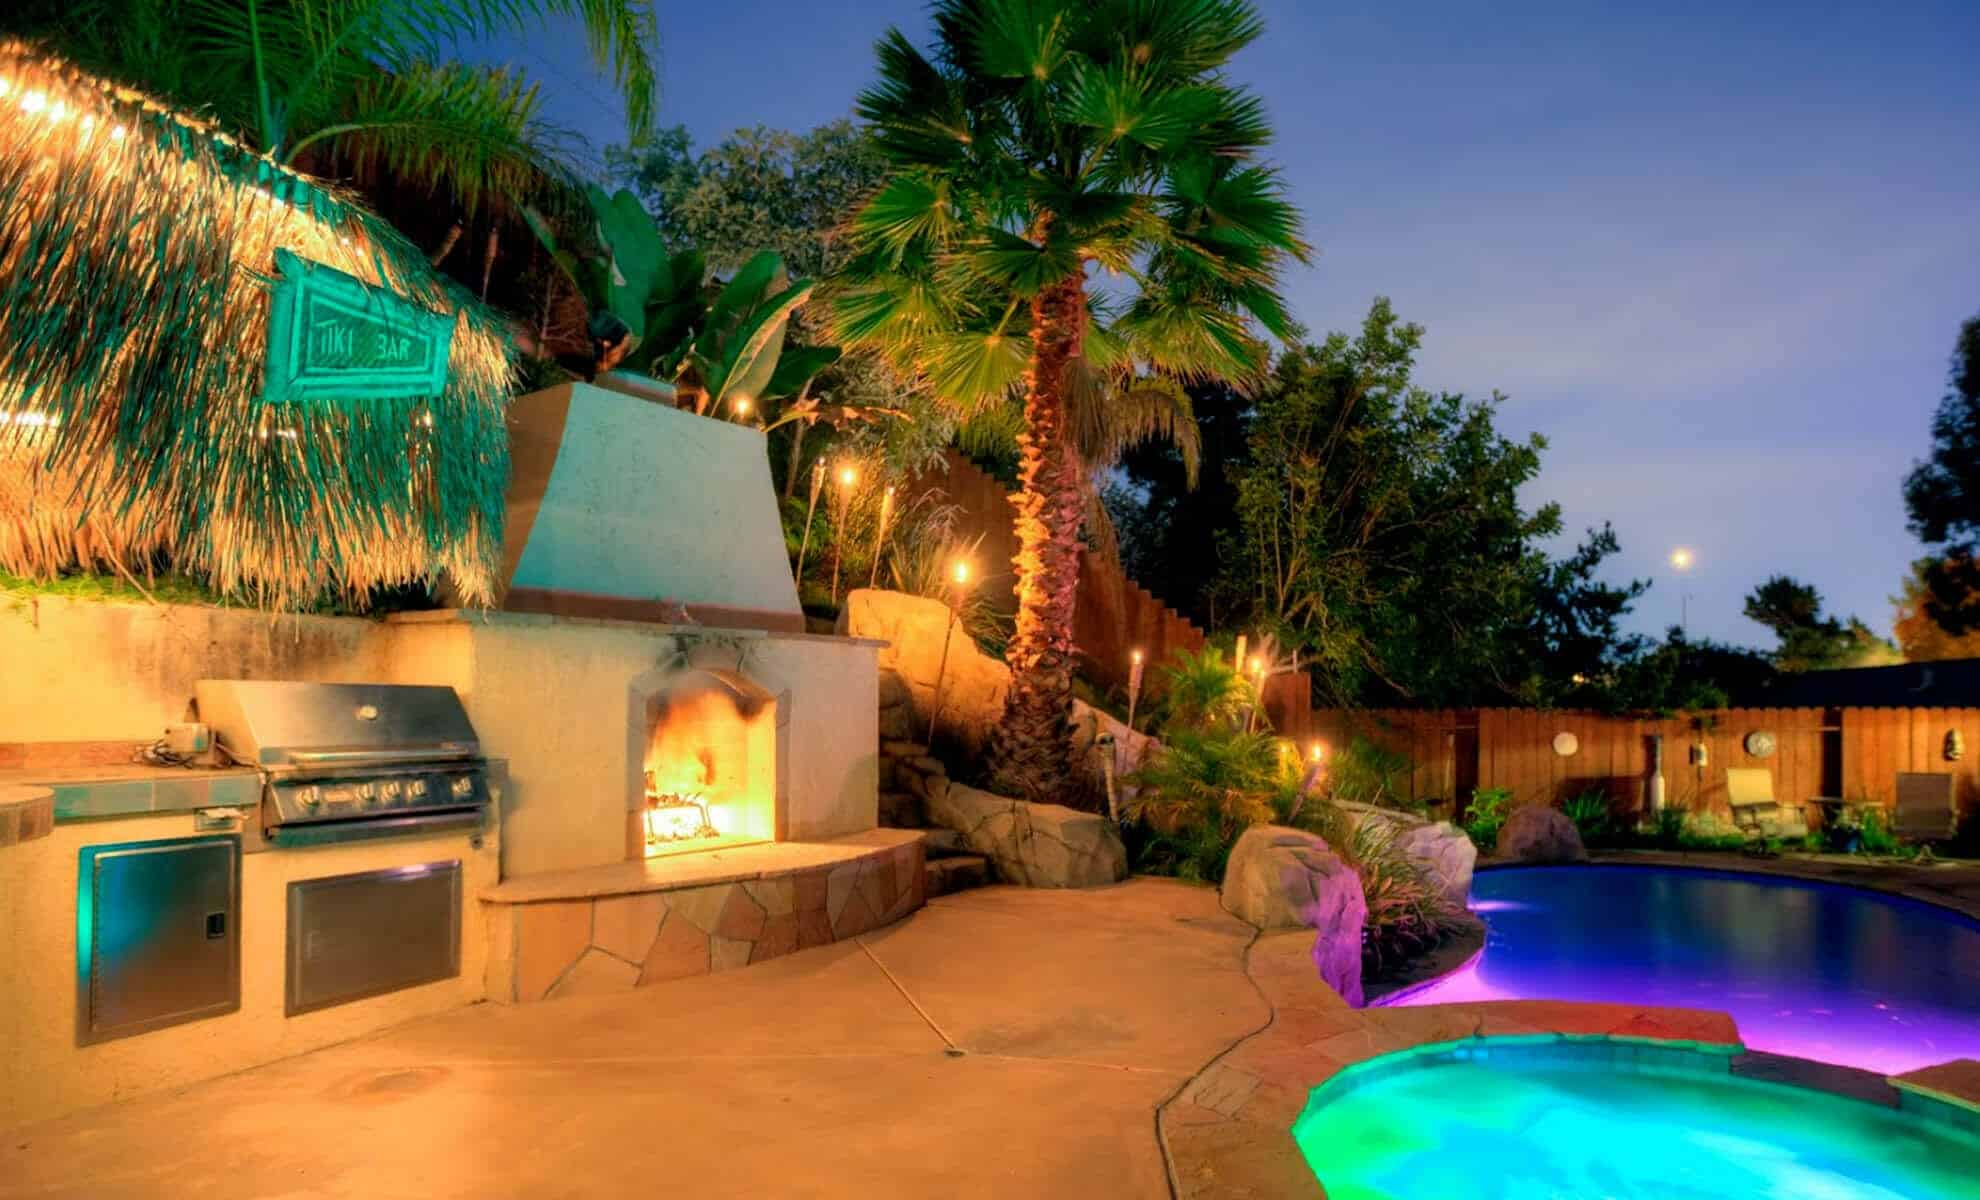 Del-Rancho-Pools-Stylish-Outdoor-Living-Portfolio-04